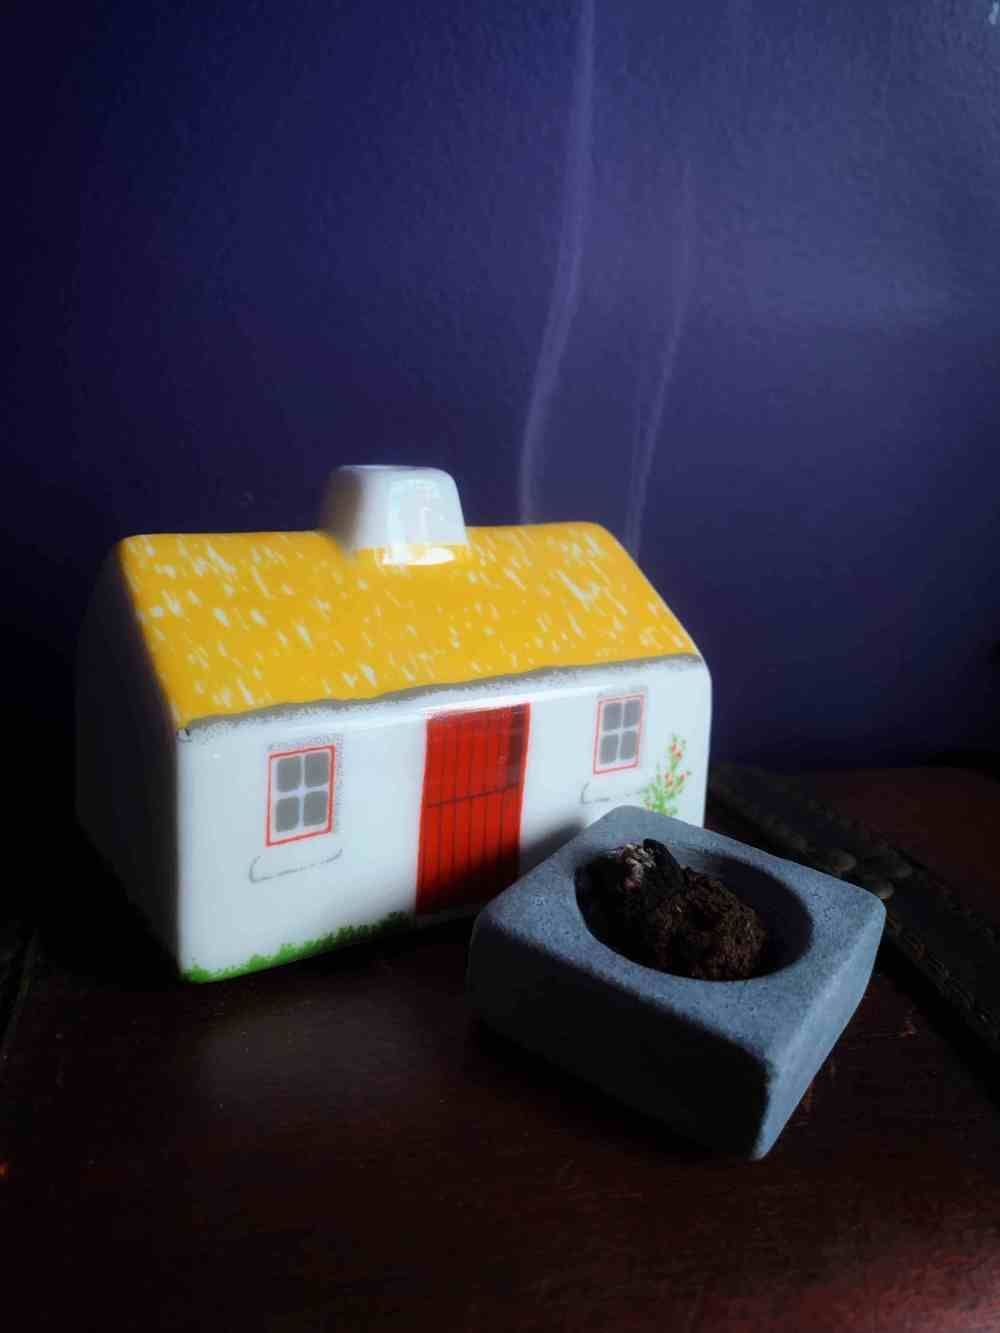 "Irish Turf Cottage Incense Burner //A Bog Witches Dream! This magical little witches cottage comes with 12 pieces of Irish Bog Turf incense. Invoke your inner bog witch with this wonderful incense and burner set. In Ireland they say ""That home is where the hearth fire is"" and by owning this turf-burning cottage you reconnect to your Irish roots. The Irish turf used in this set is processed naturally into incense. #witchcottage Irish Turf Cottage Incense Burner //A Bog Witches Dream! This mag #witchcottage"